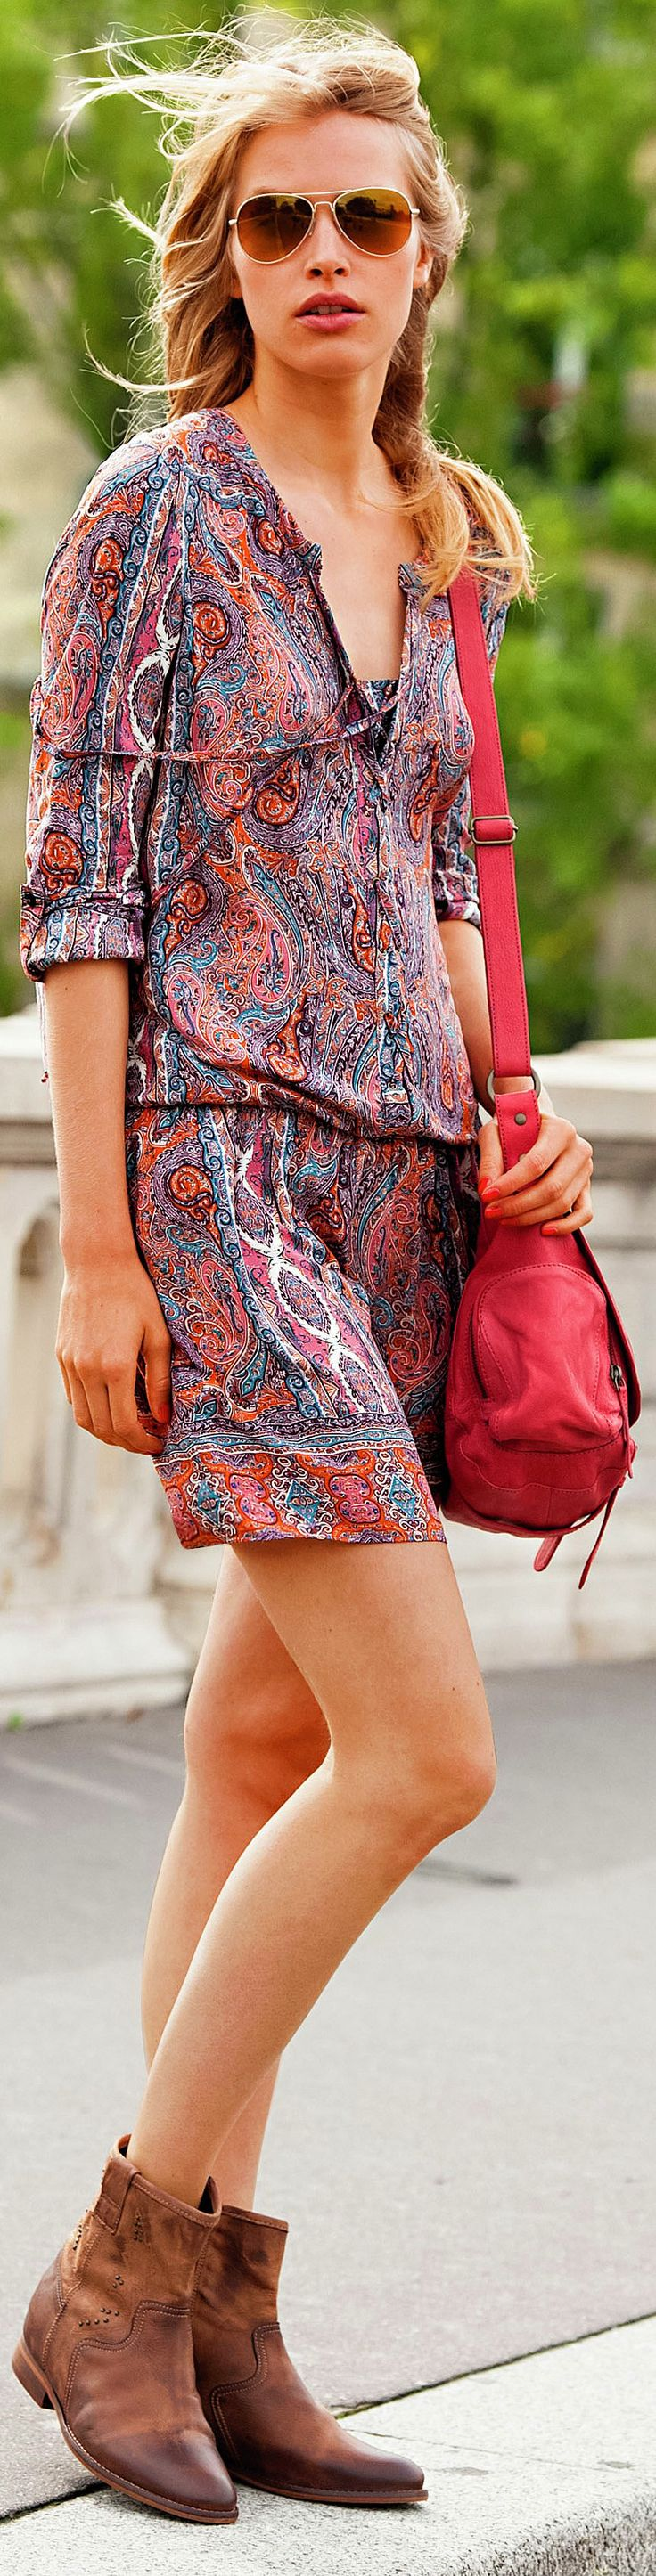 UPDATED ARTICLE - Best Travel Bags for Women - http://www.boomerinas.com/2013/02/02/best-crossbody-bags-for-travel-women-over-40-50-60/